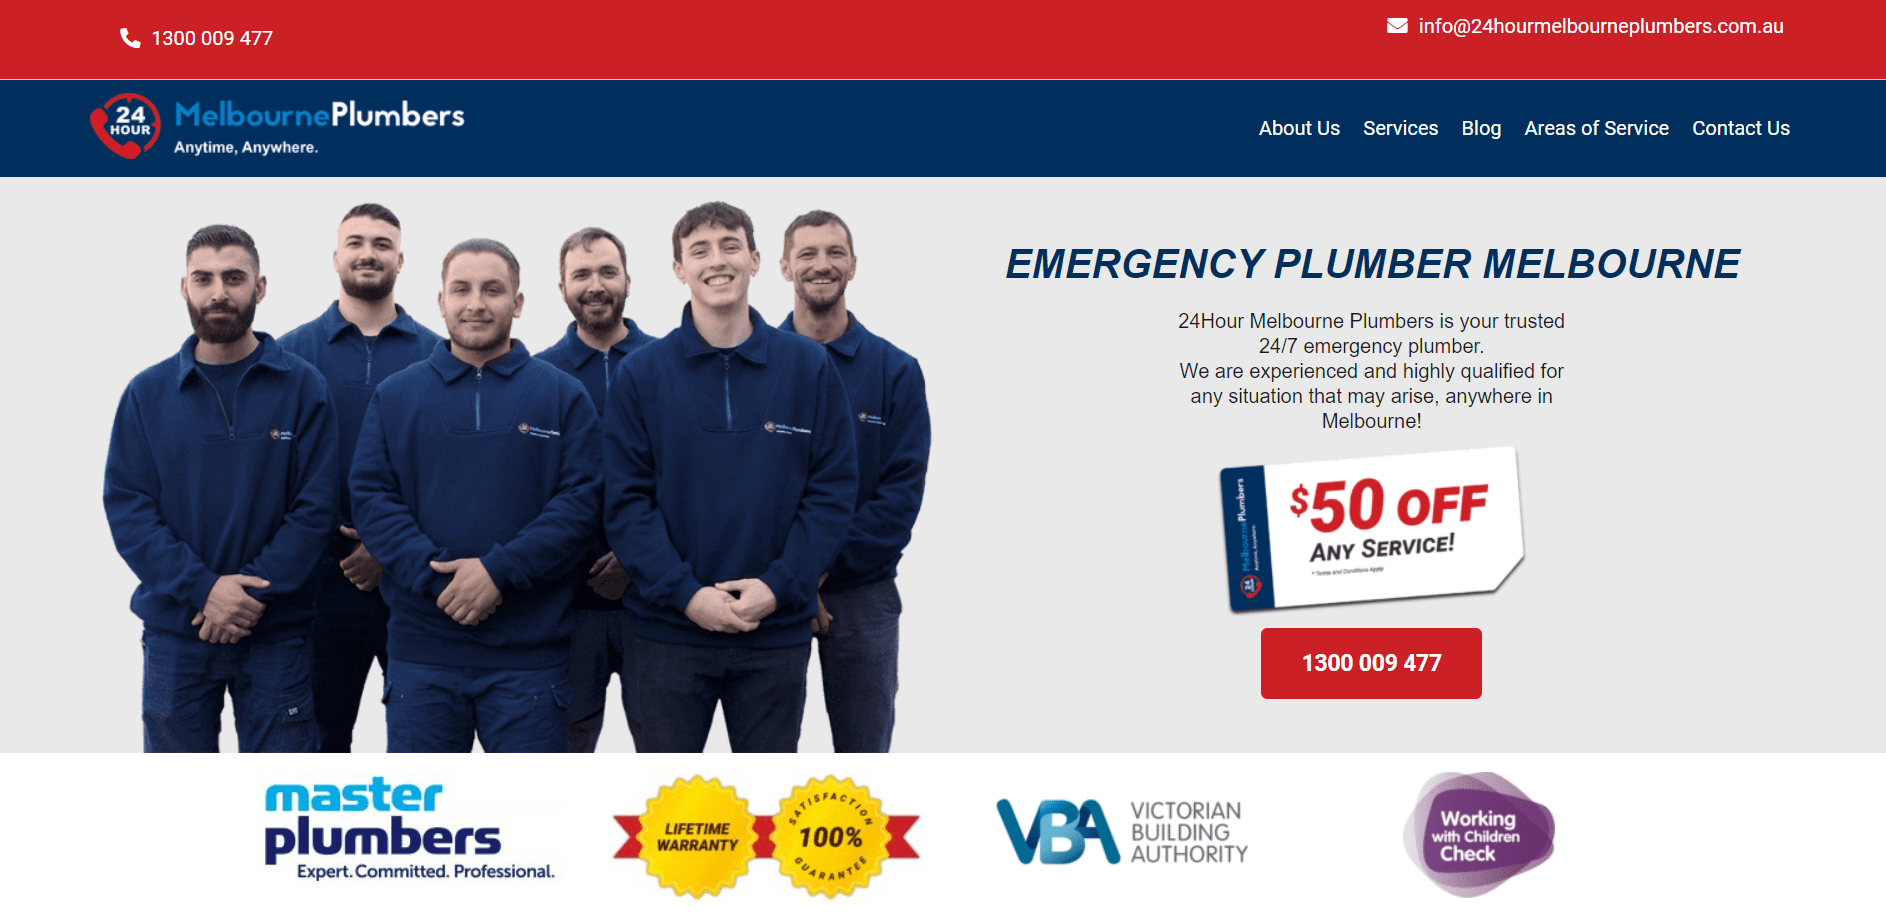 24 Hour Melbourne Plumbers